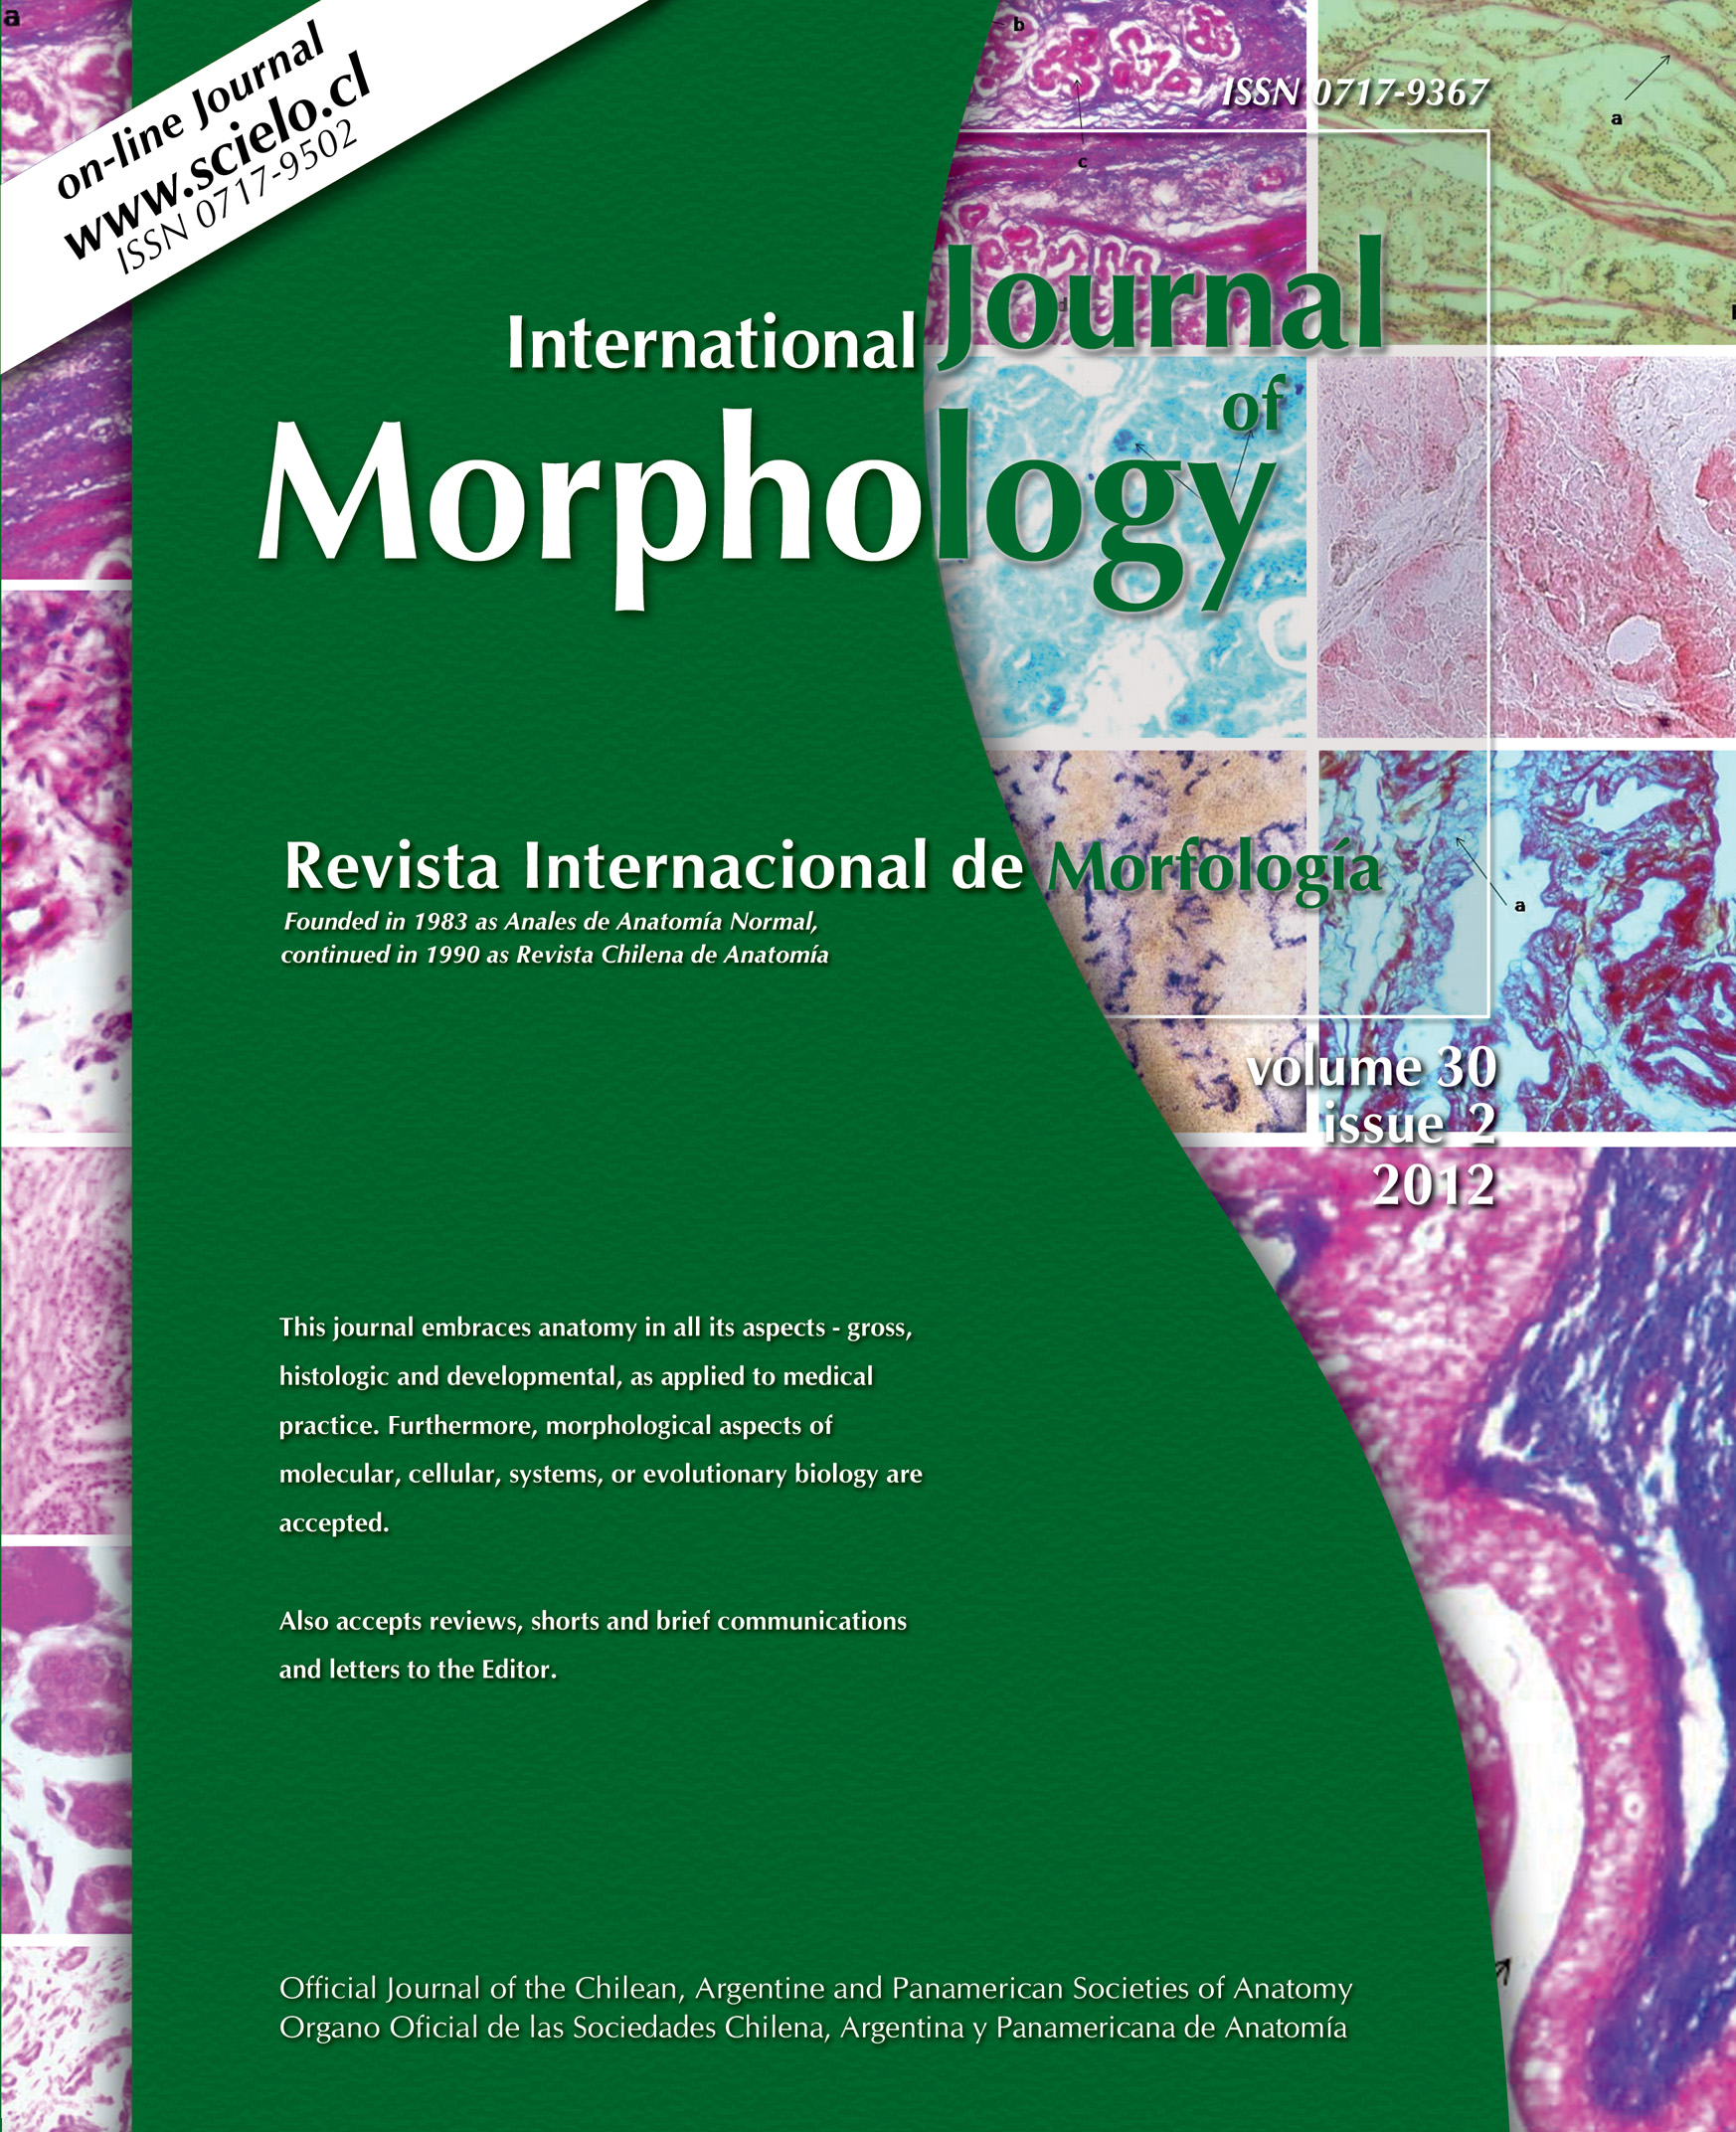 Fascículo 2 Archive - International Journal of Morphology